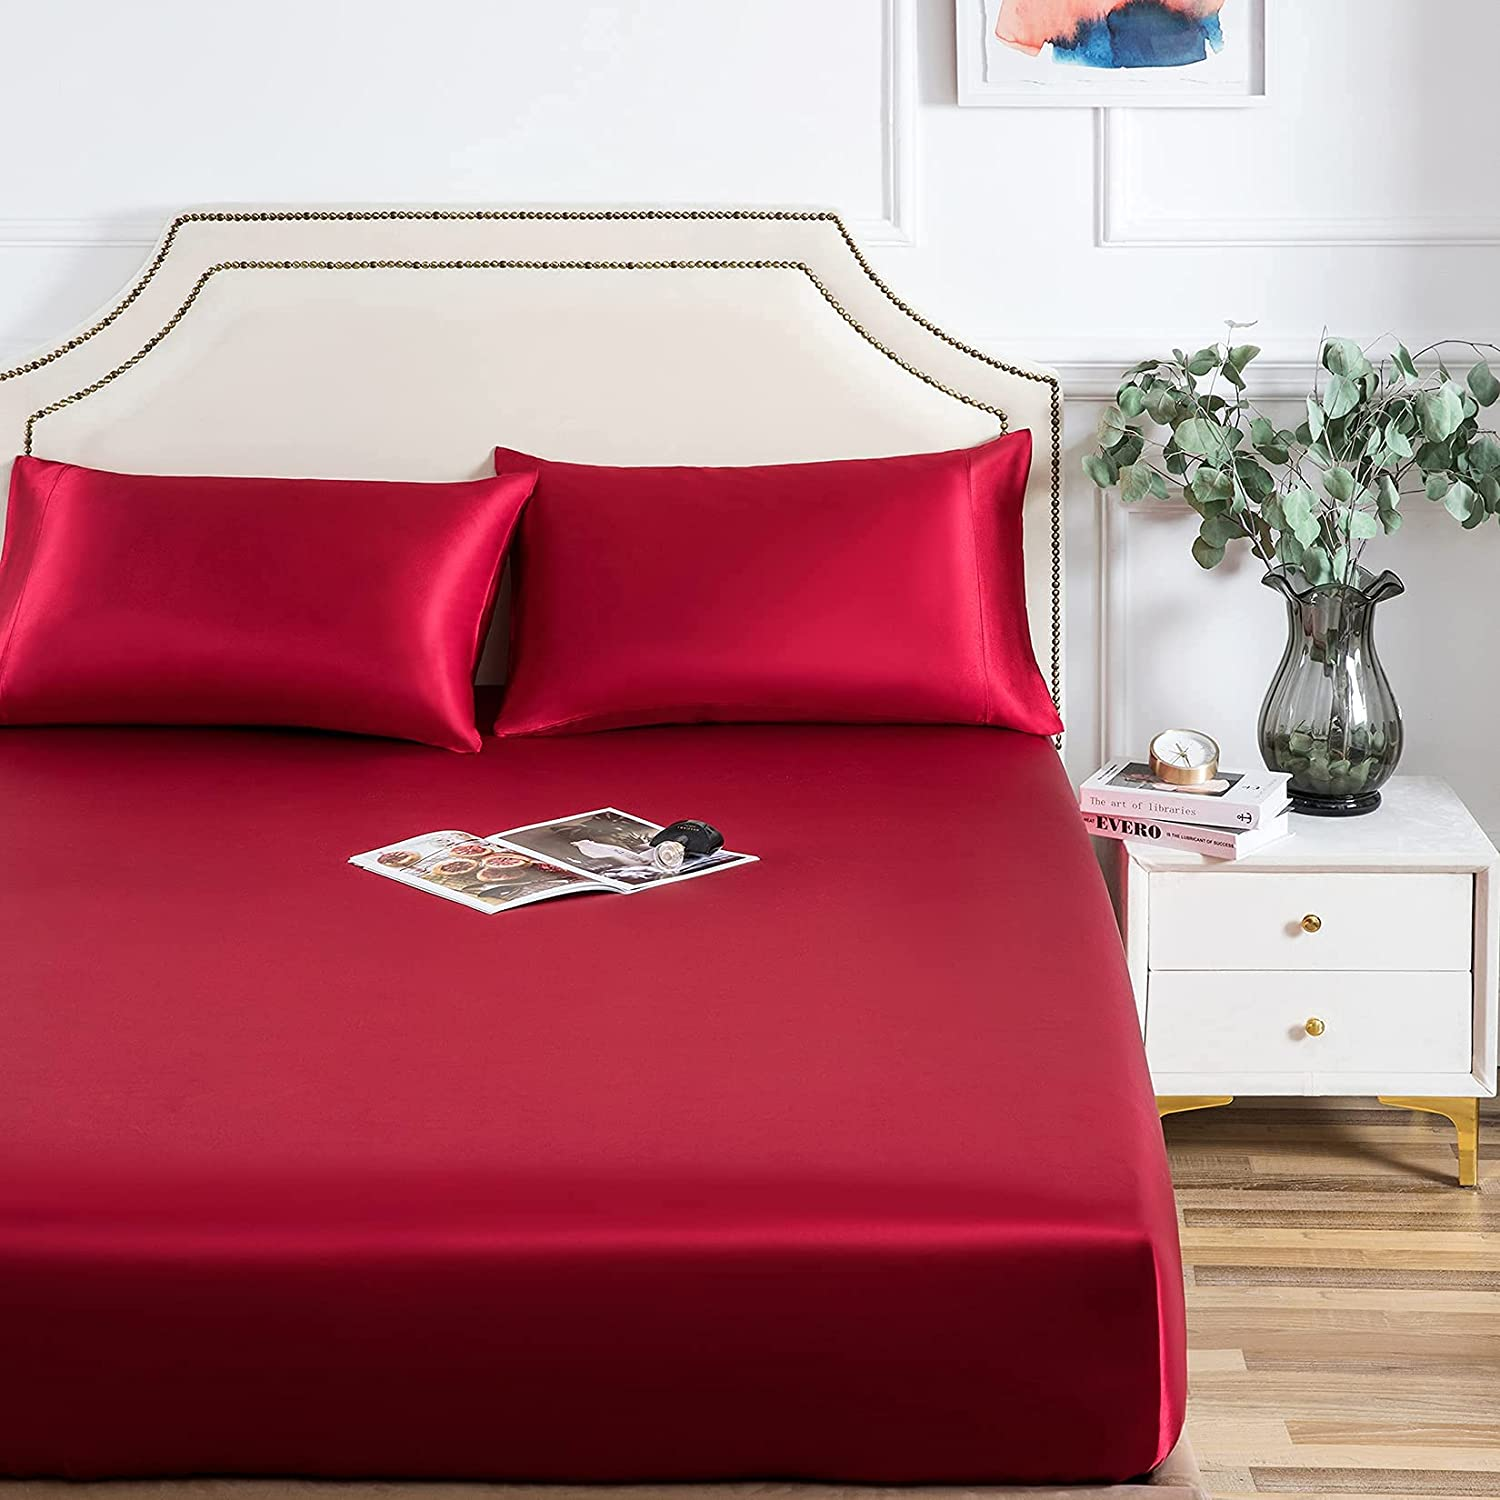 1 Piece Fitted Sheet In a popularity Luxurious Satin with Softes Price reduction 100% Hi